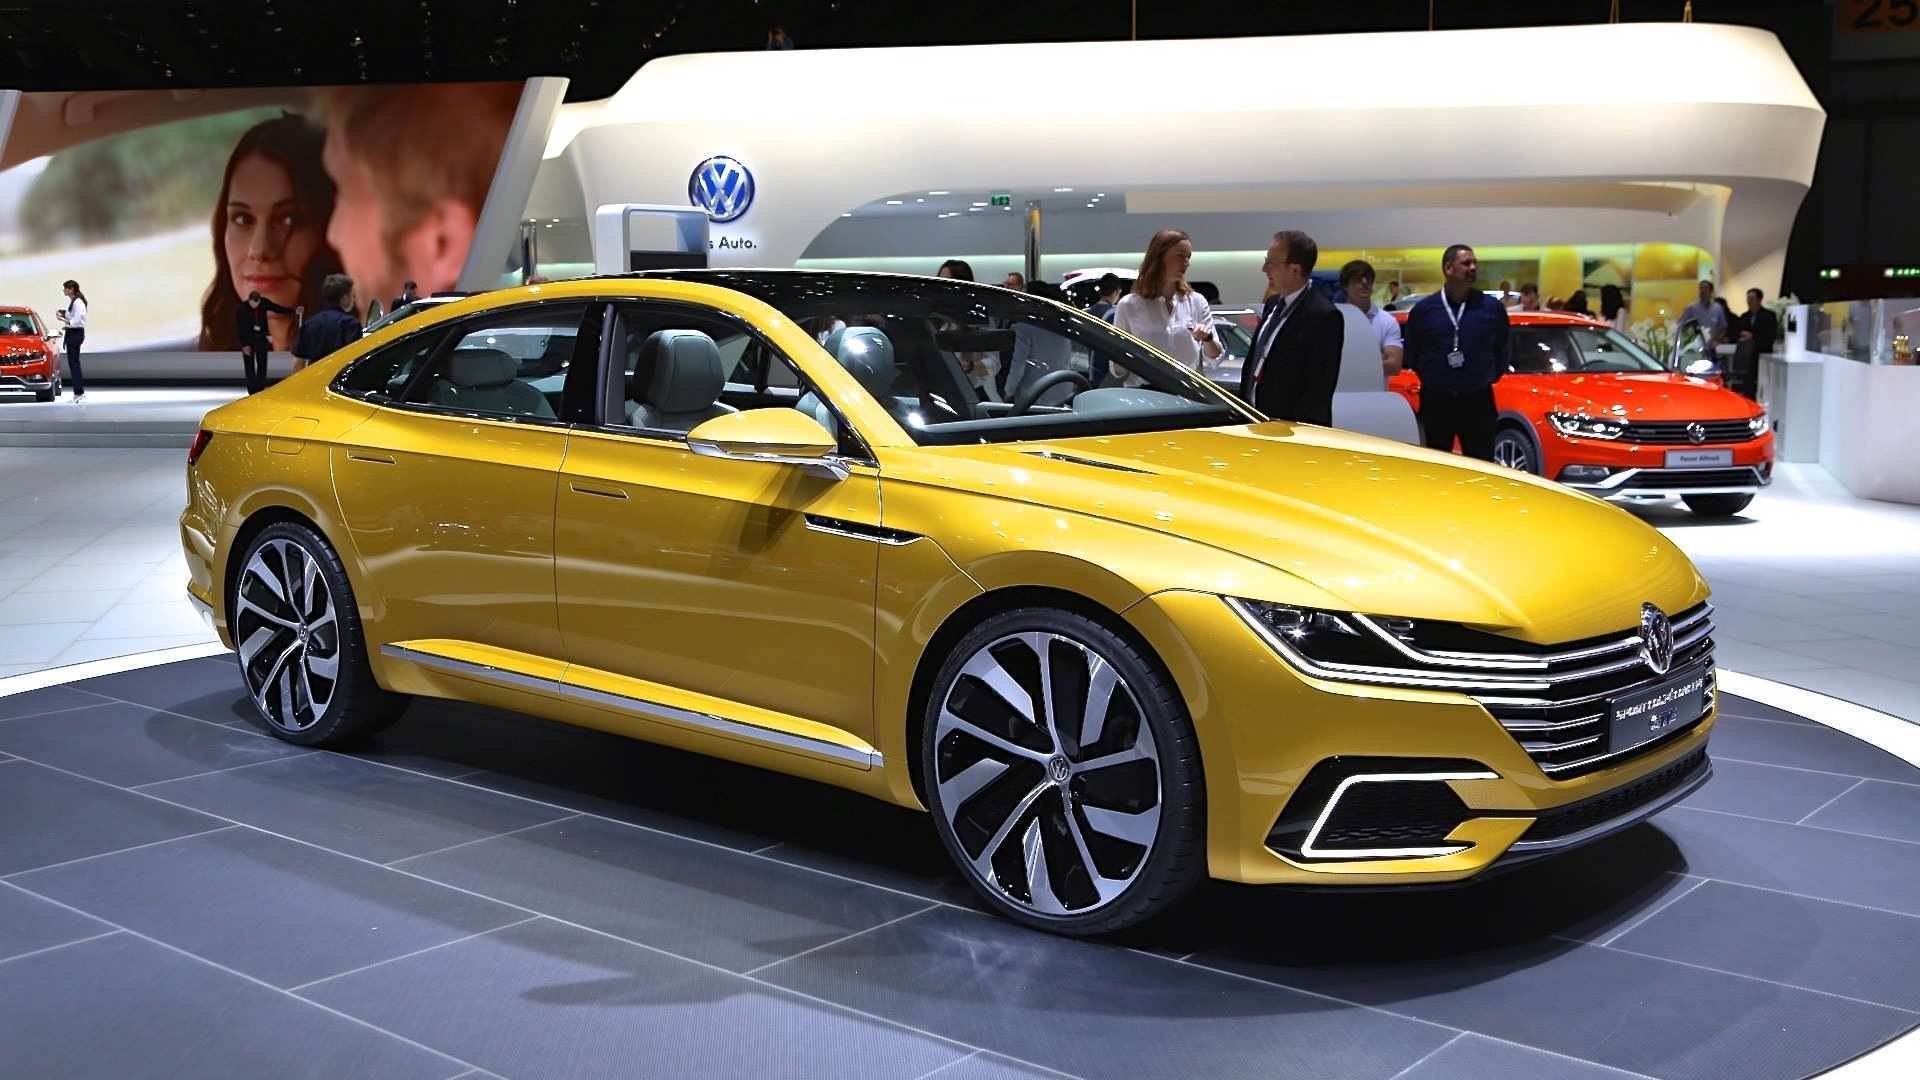 40 Best Review Next Generation 2020 Vw Cc Images for Next Generation 2020 Vw Cc